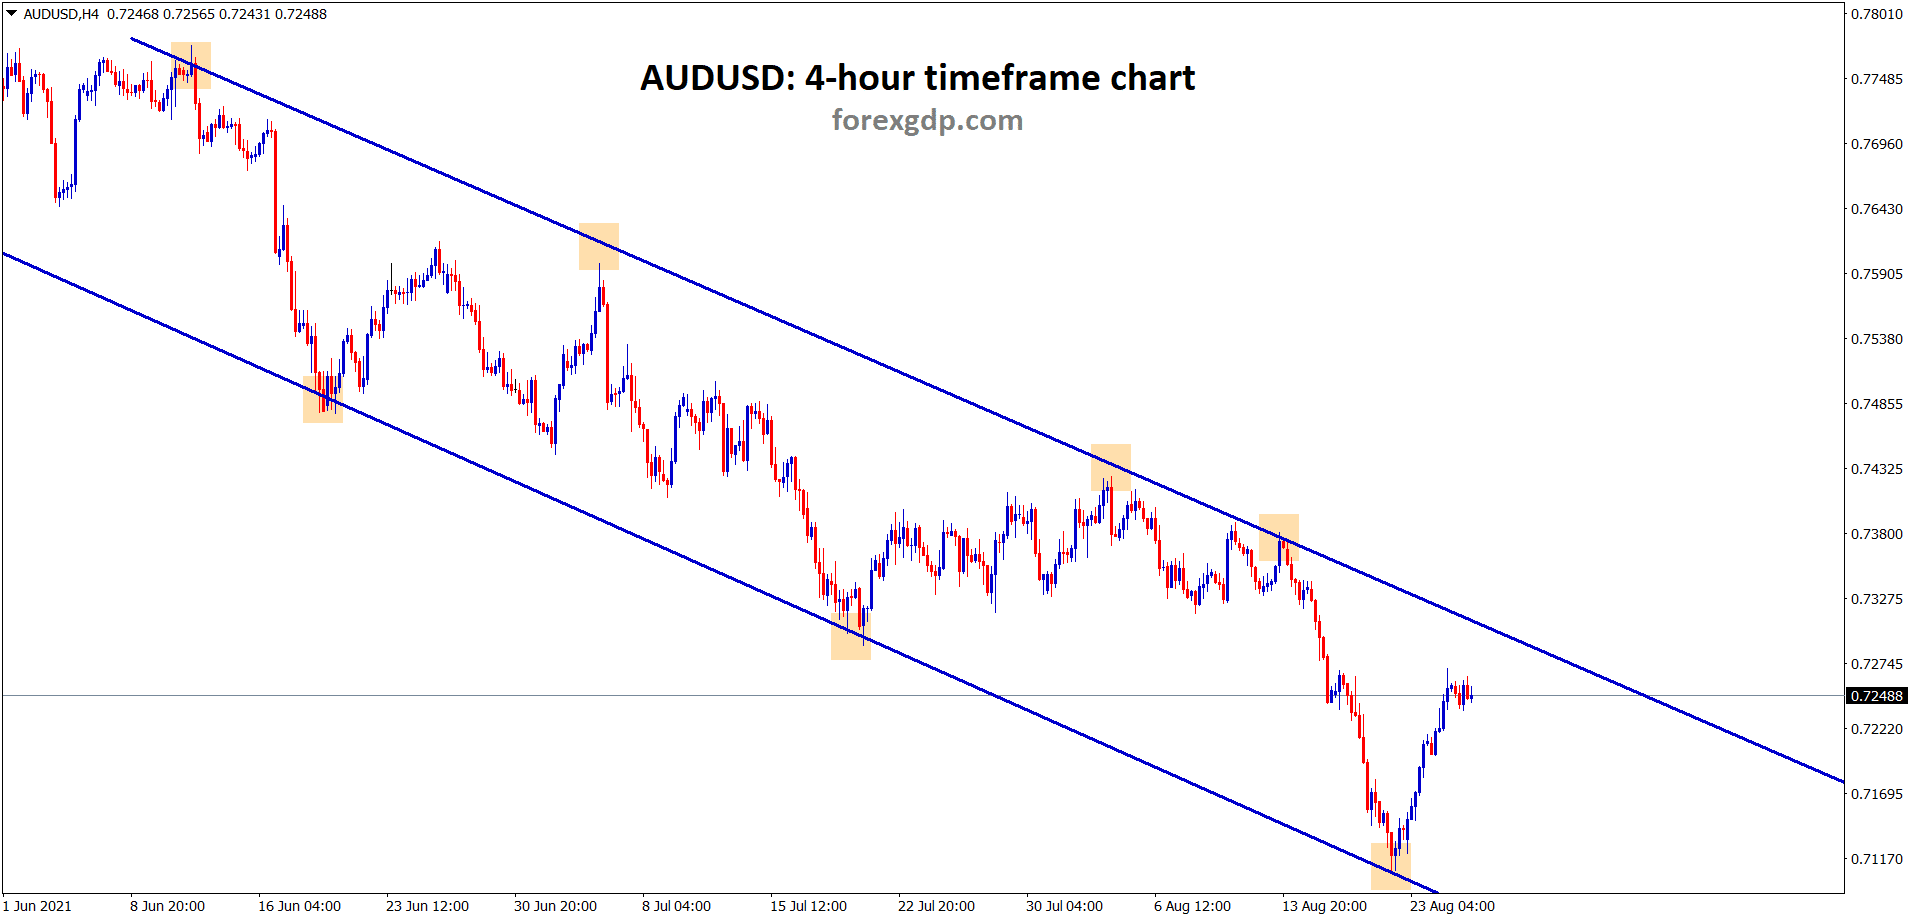 AUDUSD is moving in a clear descending channel range